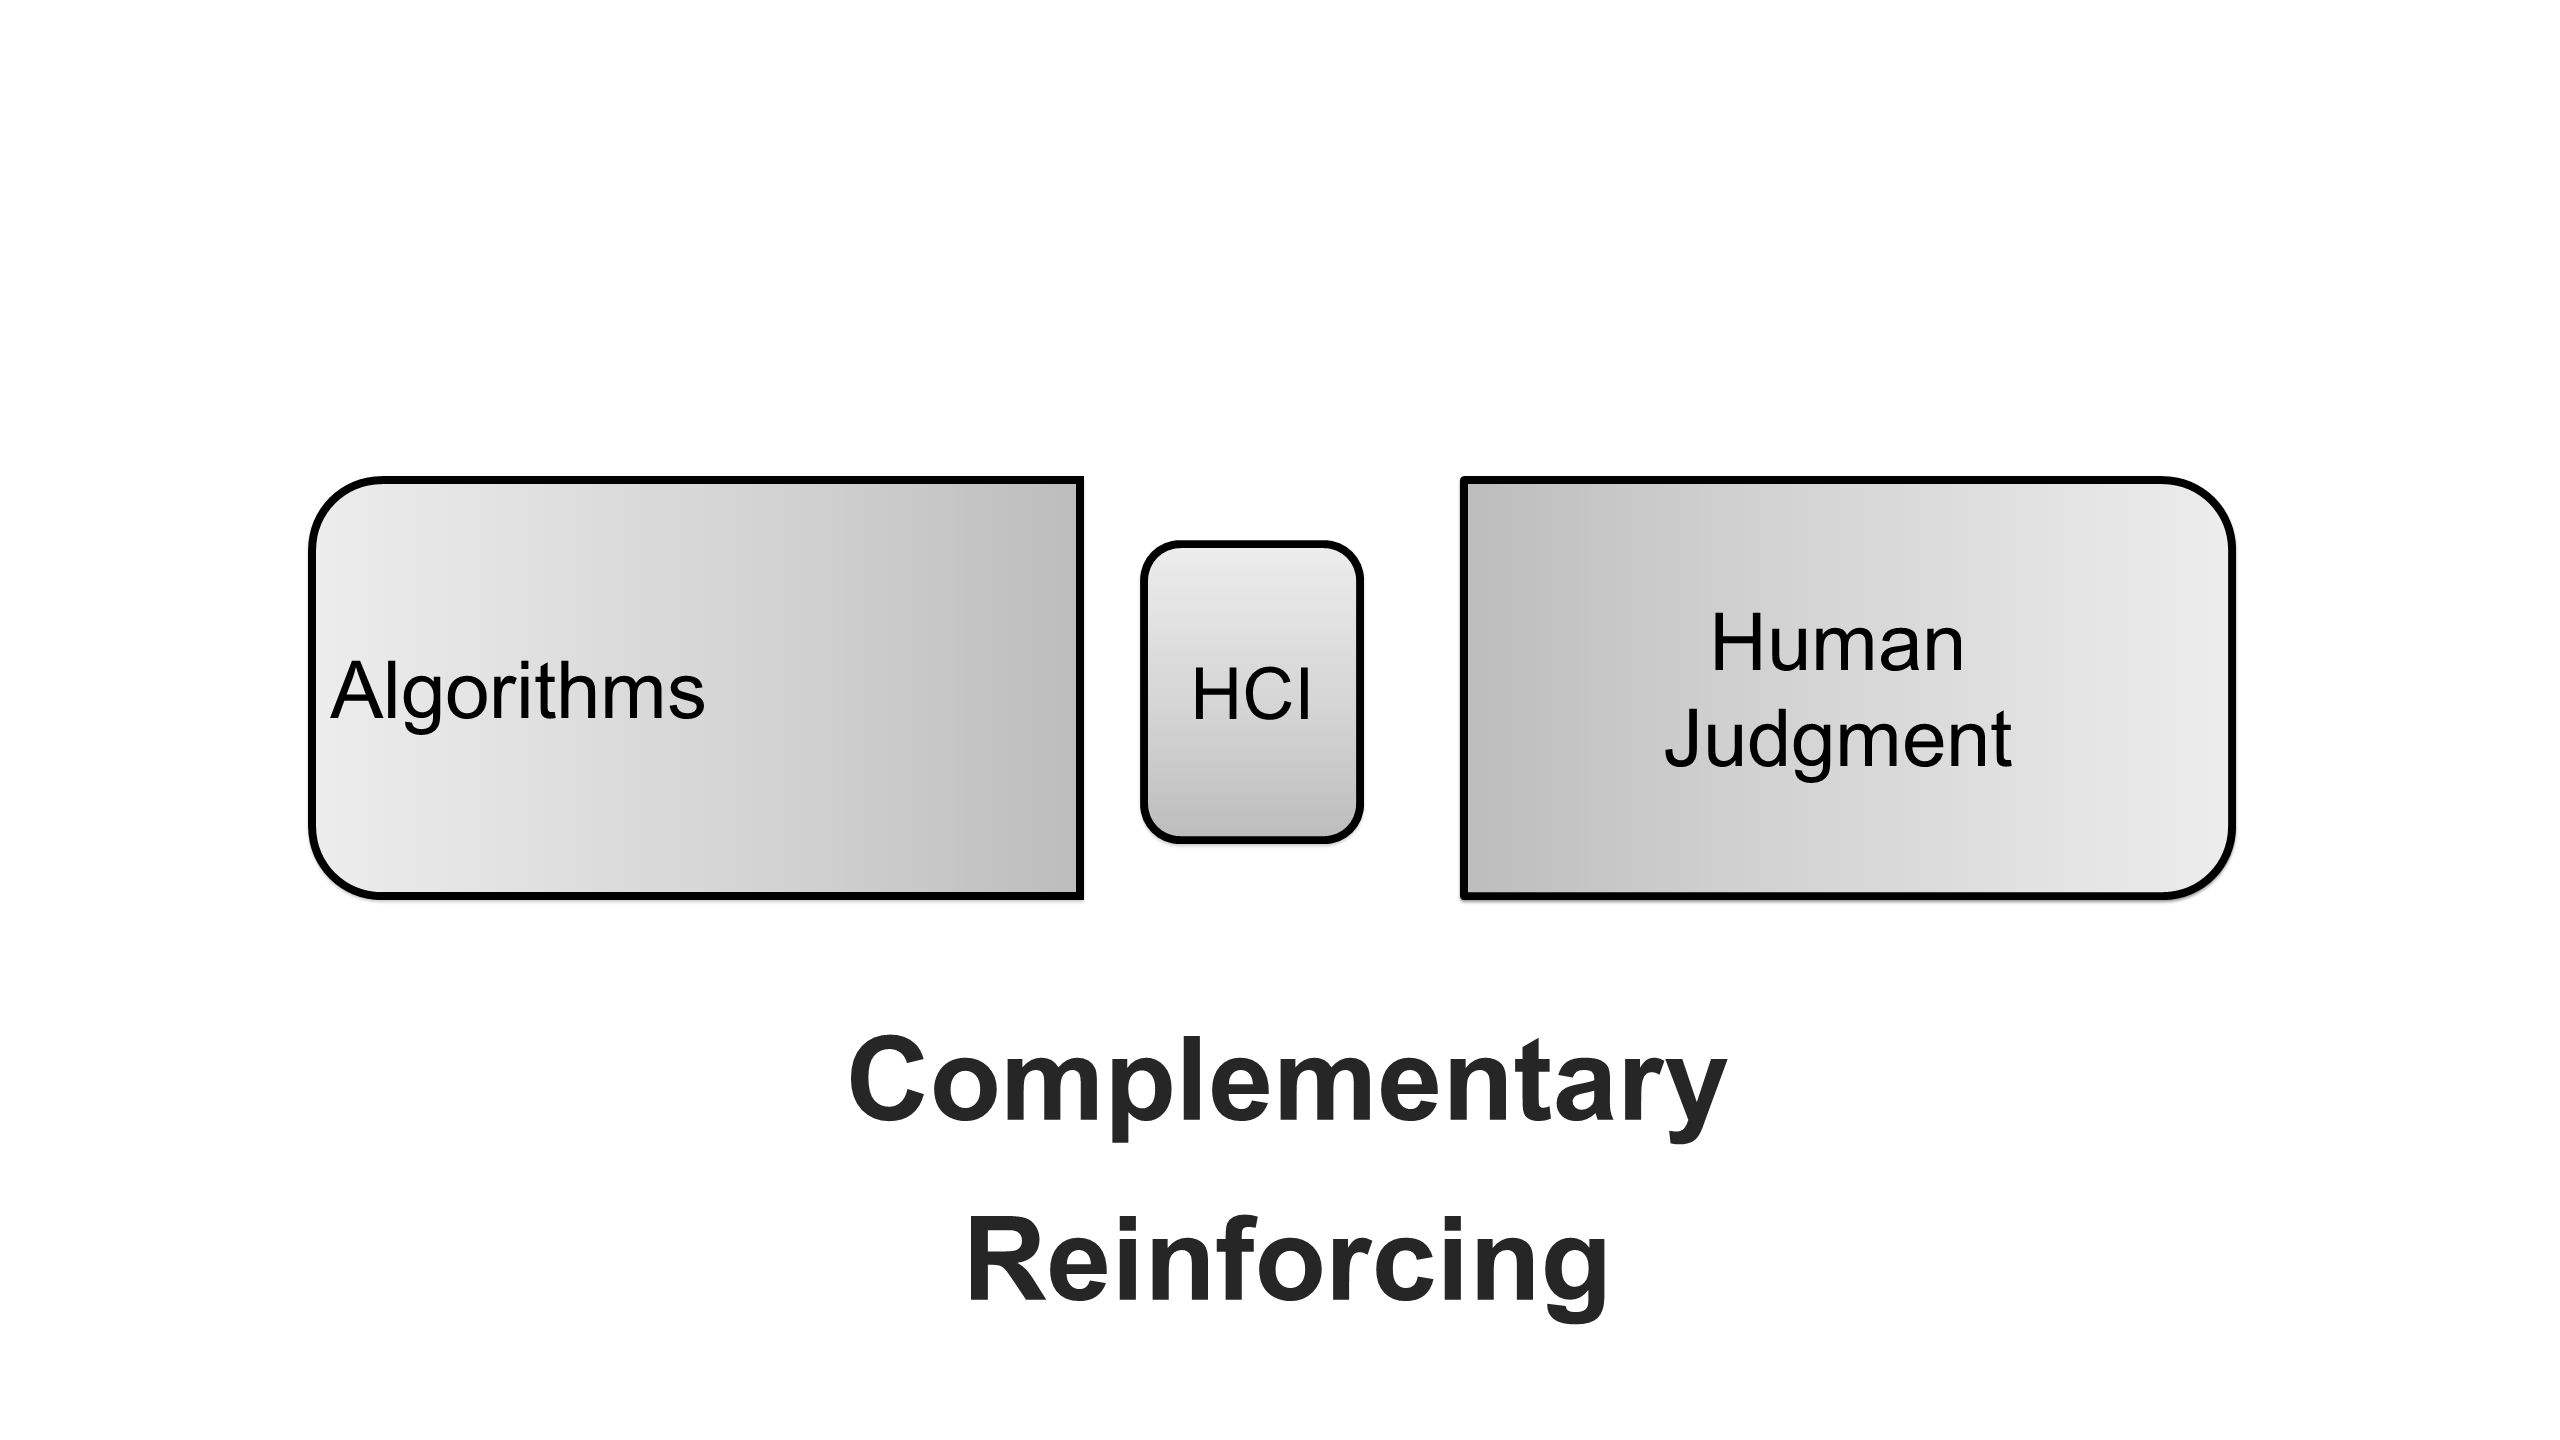 Complementary Reinforcing